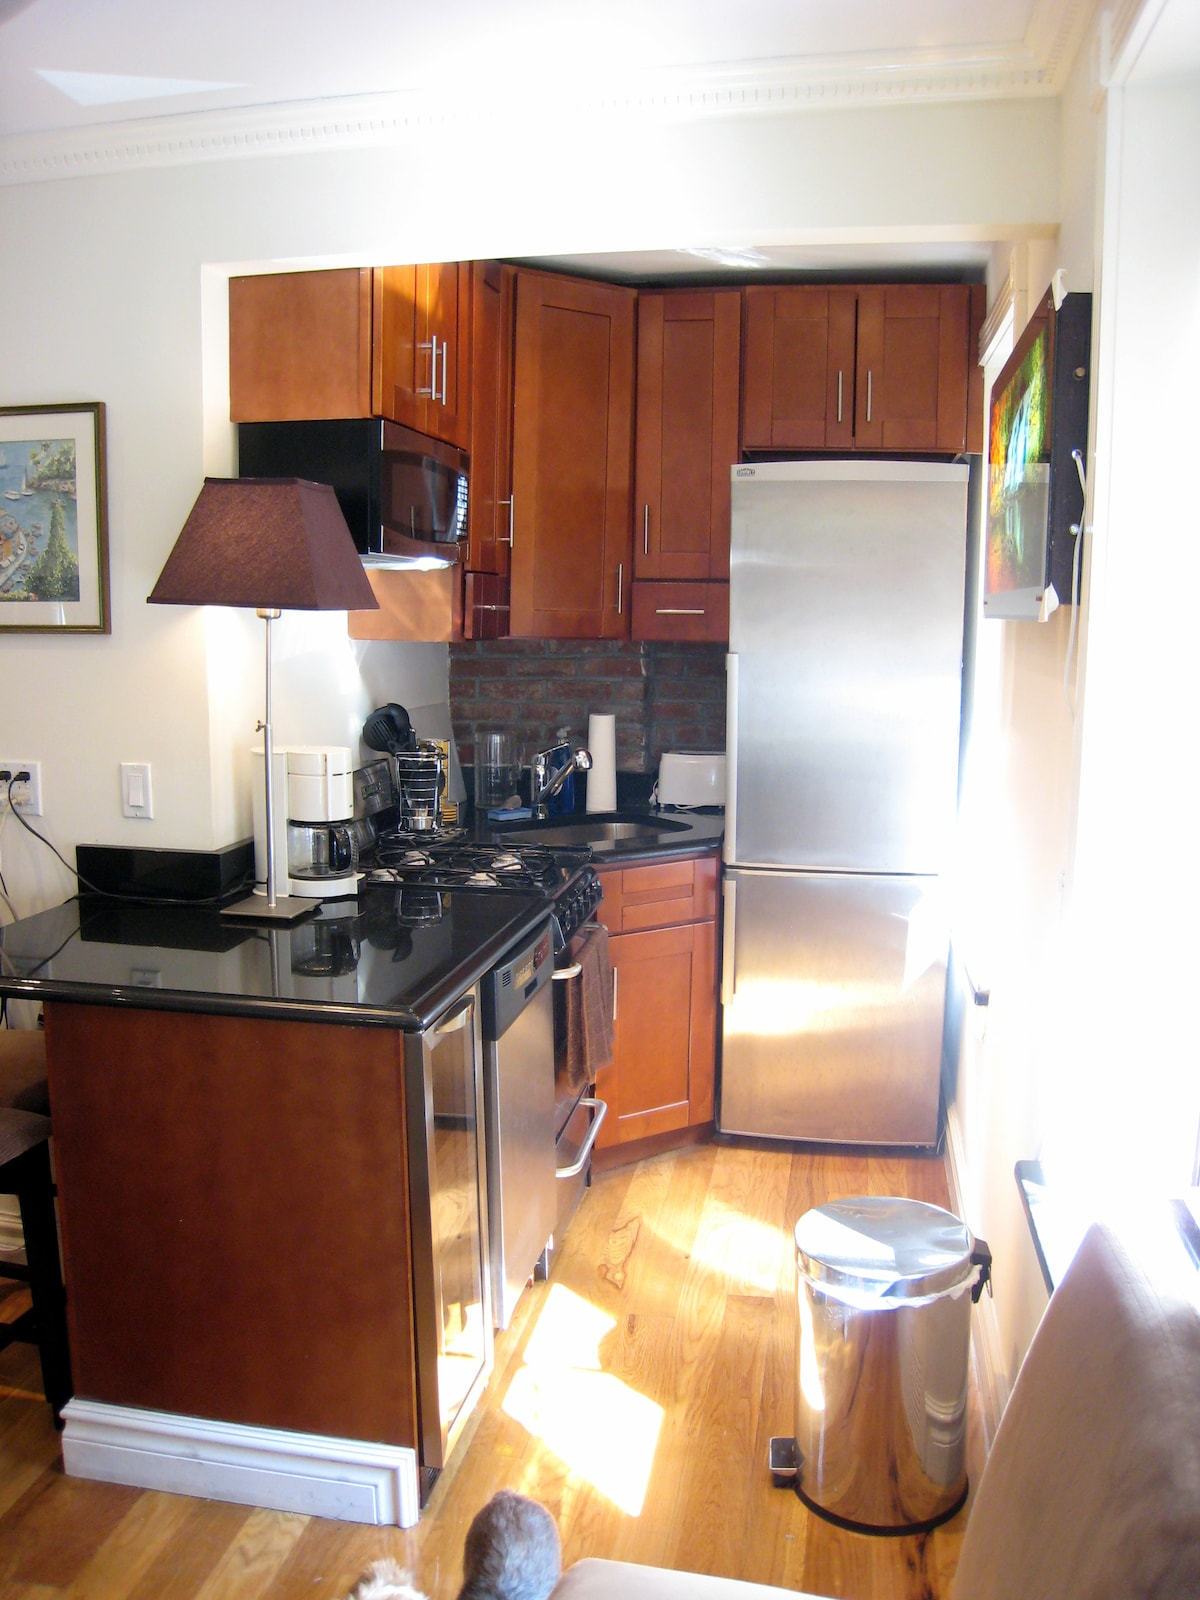 Kitchen with microwave, dishwasher, stove, oven and all cooking utensils and dining needs for preparing meals